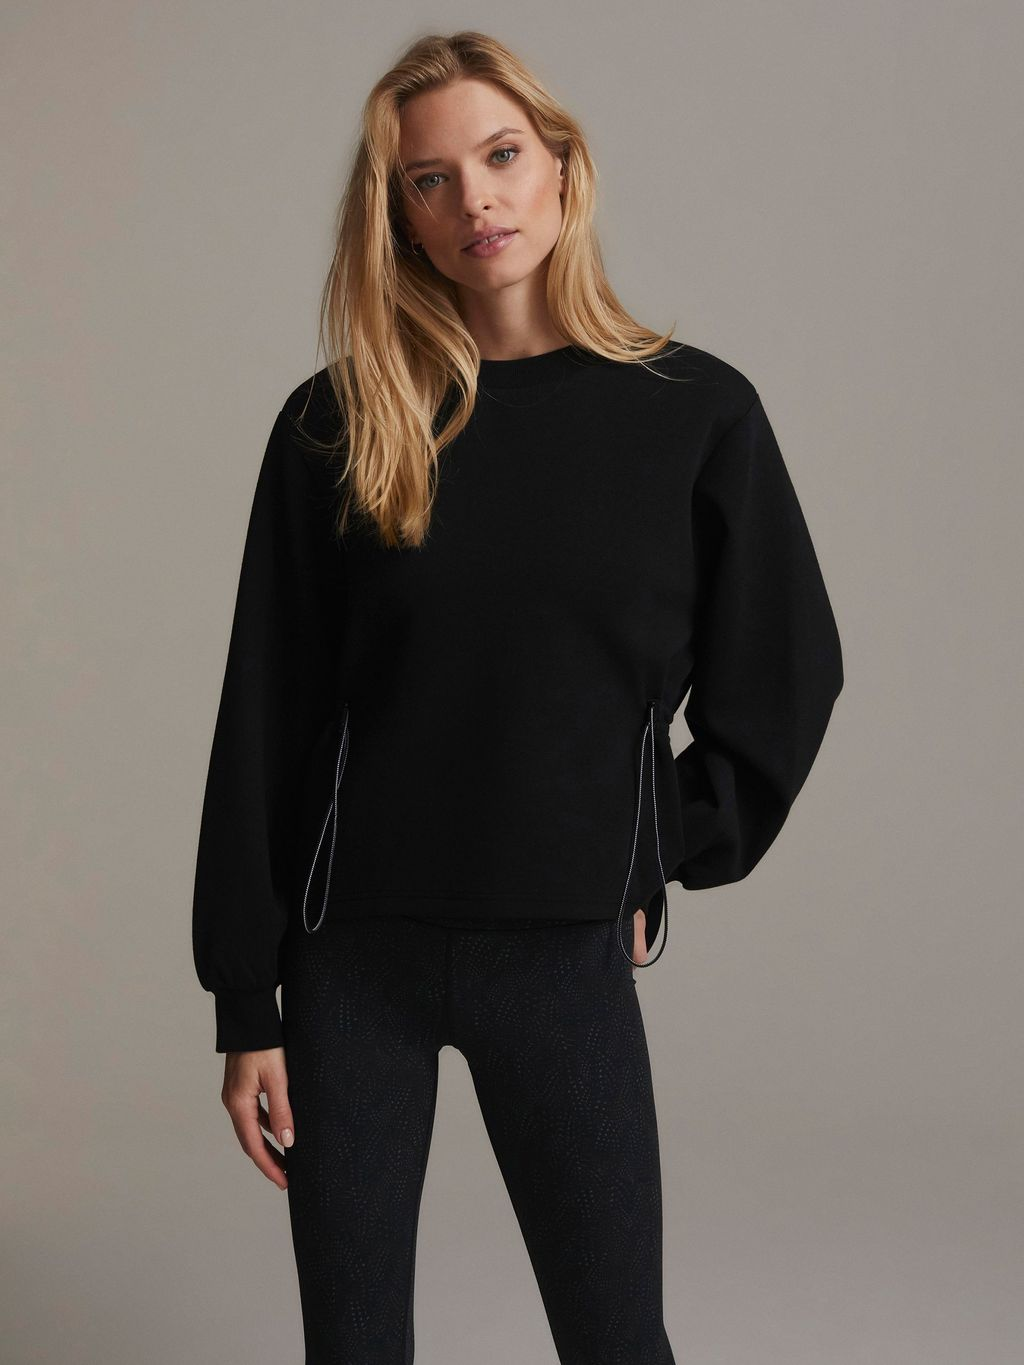 Varley Sweater, Bella Sweat Black, Basic Sweater, Basic Pulli, Schwarzer Sweater, Bella Sweater, oversized Sweater